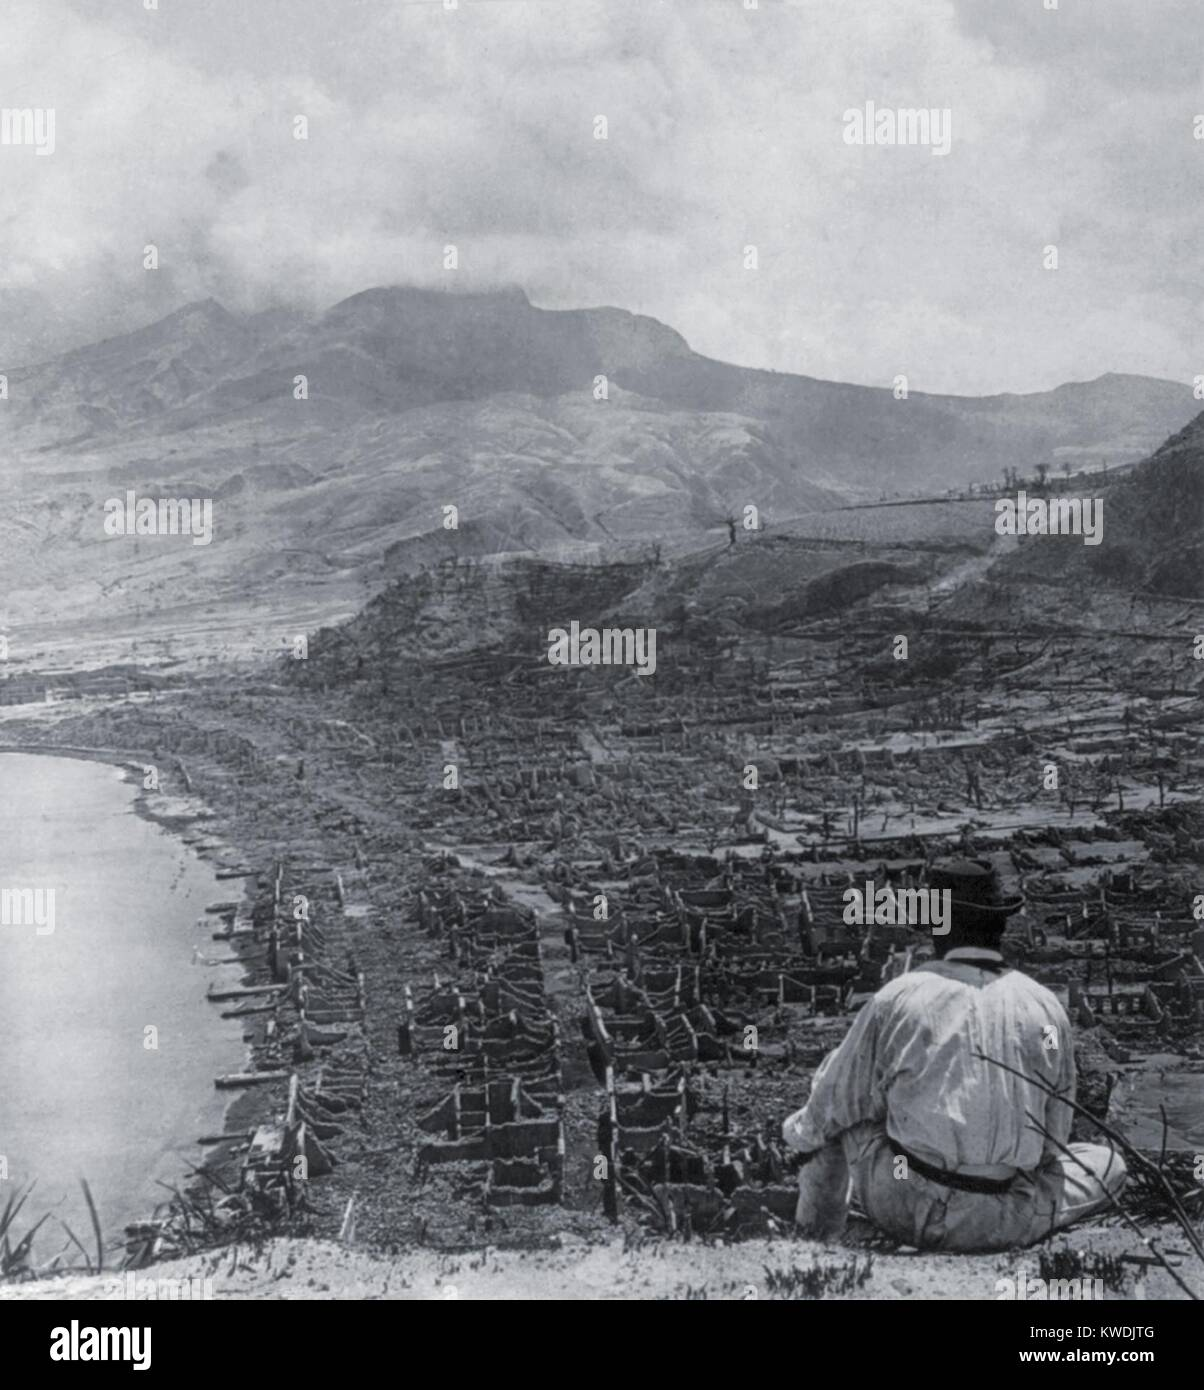 Man on Orange Hill looks over the dead city of St. Pierre, and up to steaming volcano, Mont Pelee. A pyroclastic Stock Photo